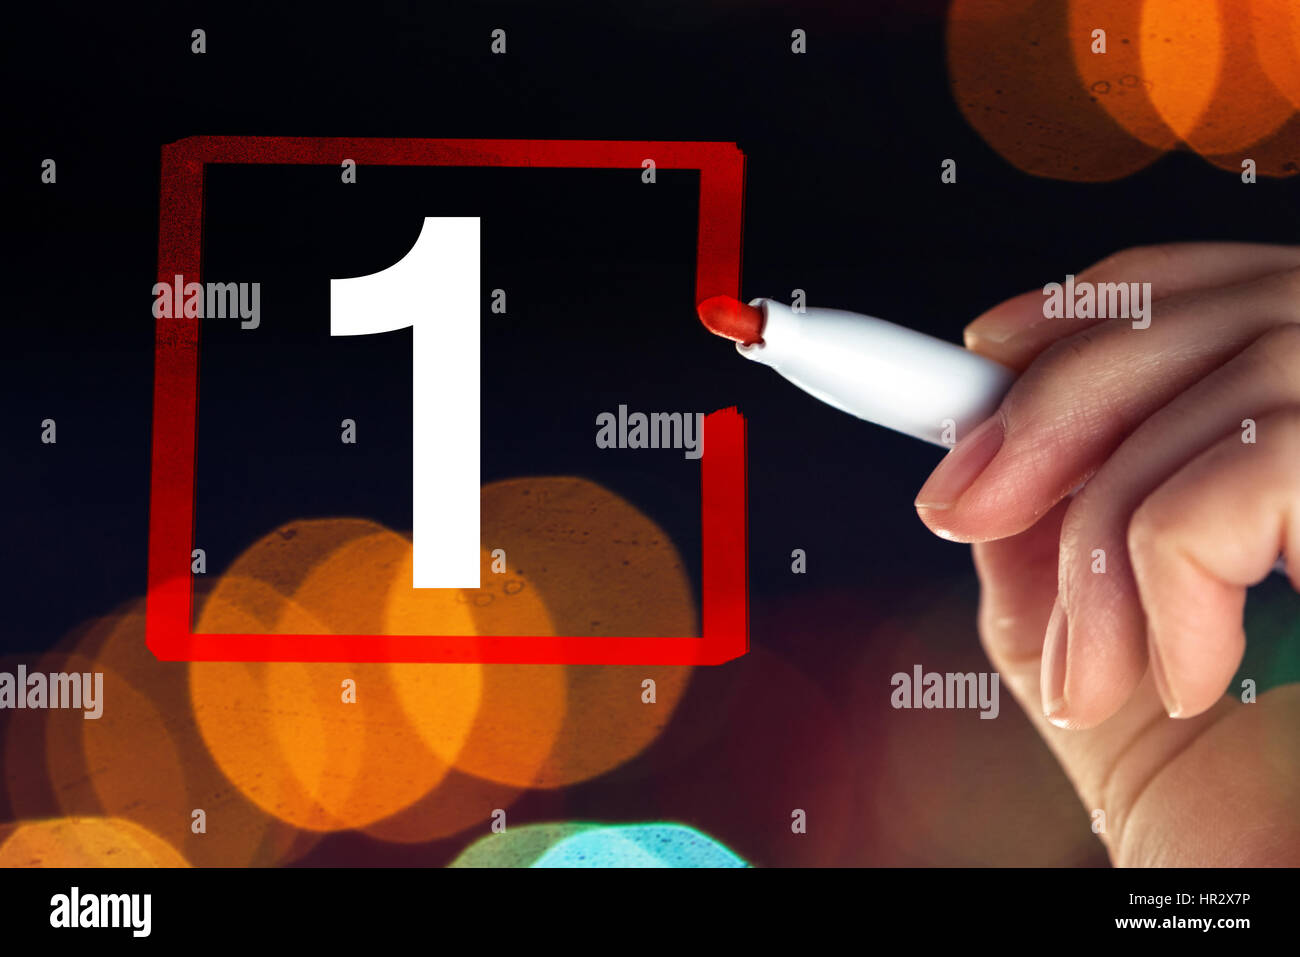 Select number one, business concept and businesswoman drawing rectangle around cipfer 1 as making a decision and - Stock Image